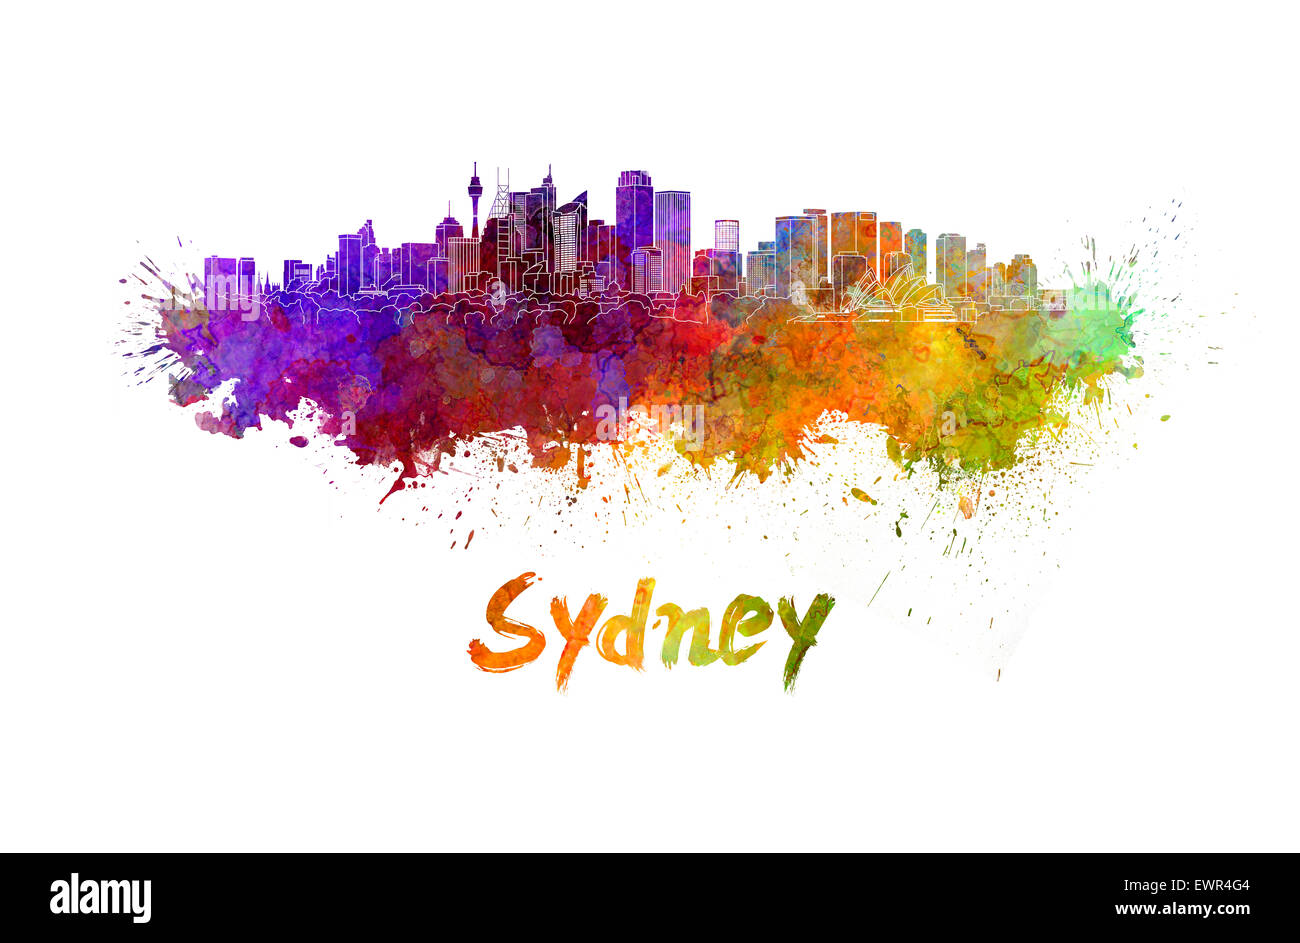 Sydney v2 skyline in watercolor splatters with clipping path - Stock Image